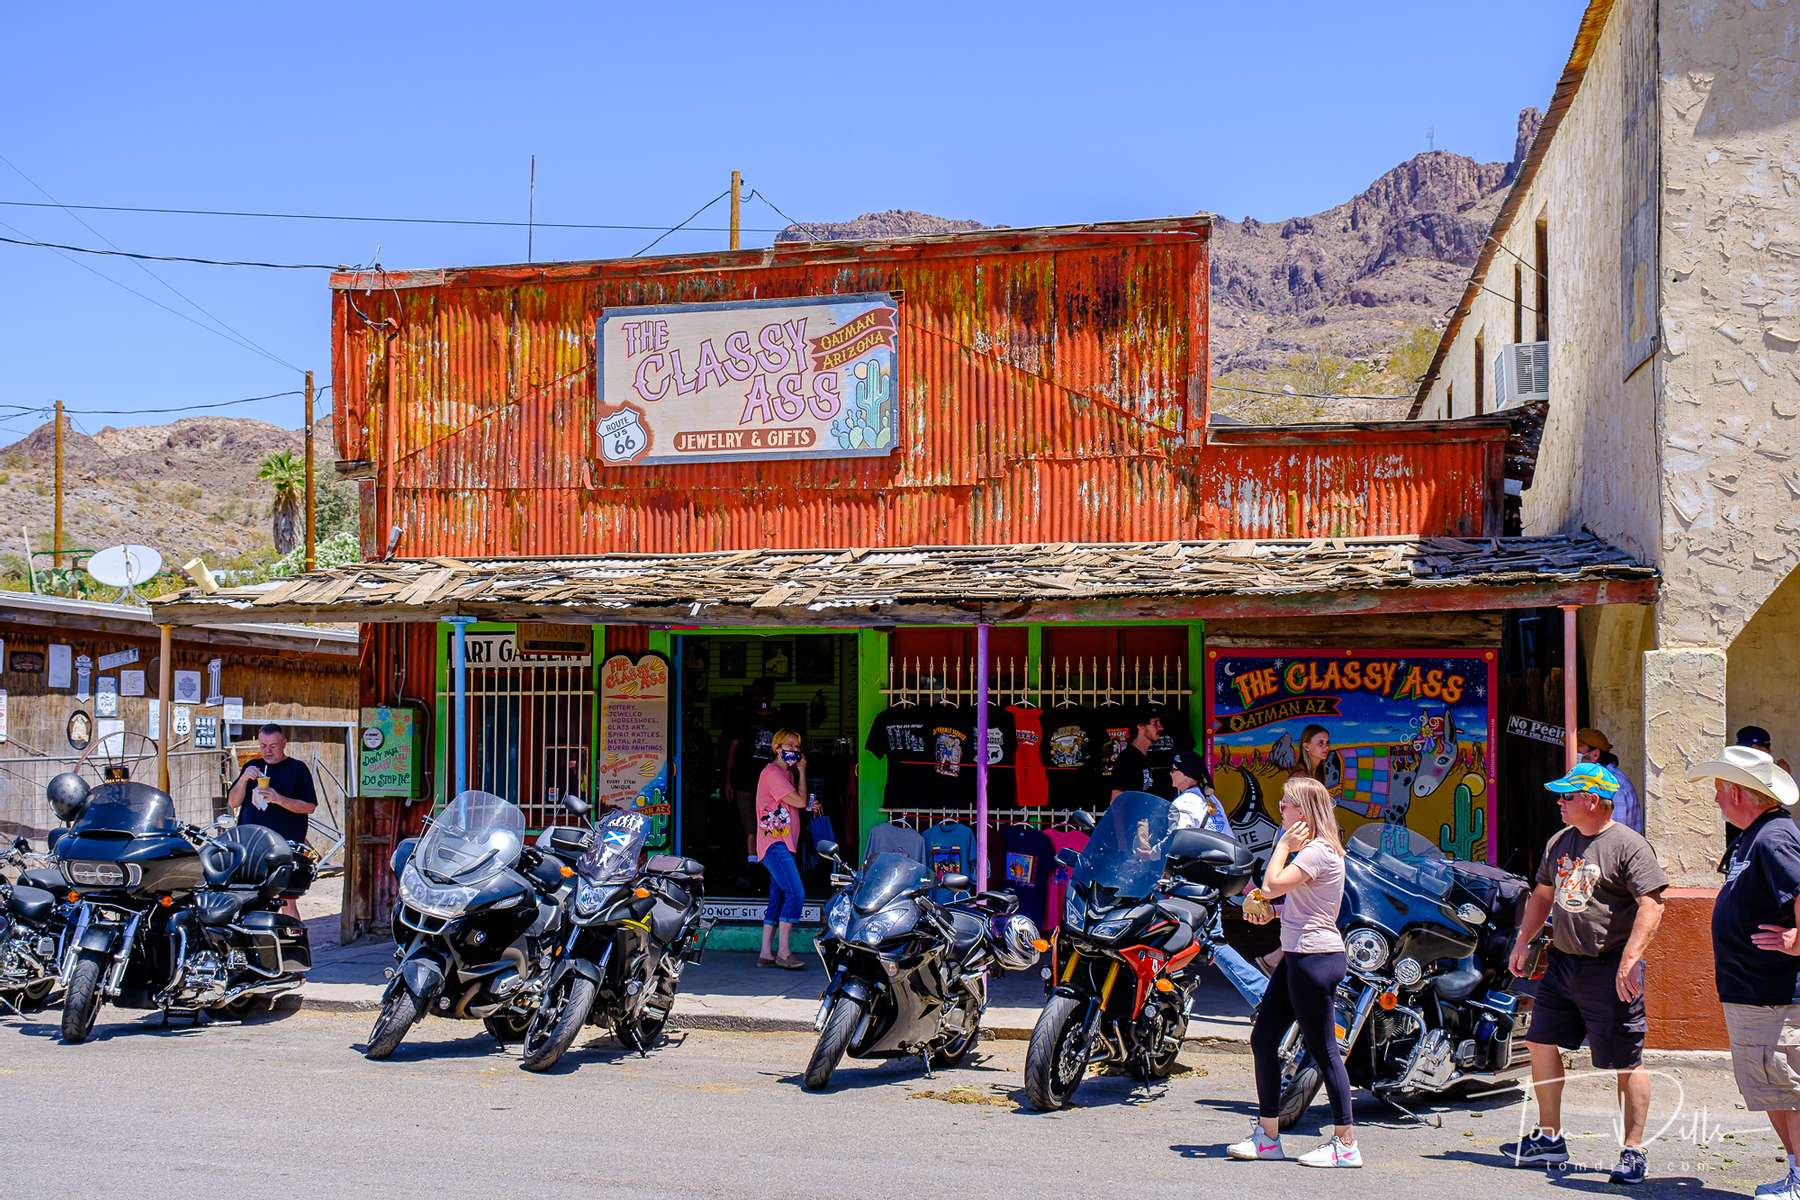 The town of Oatman, Arizona is famous for its wild burros (and tourists) roaming the streets.  A Route 66 attraction.